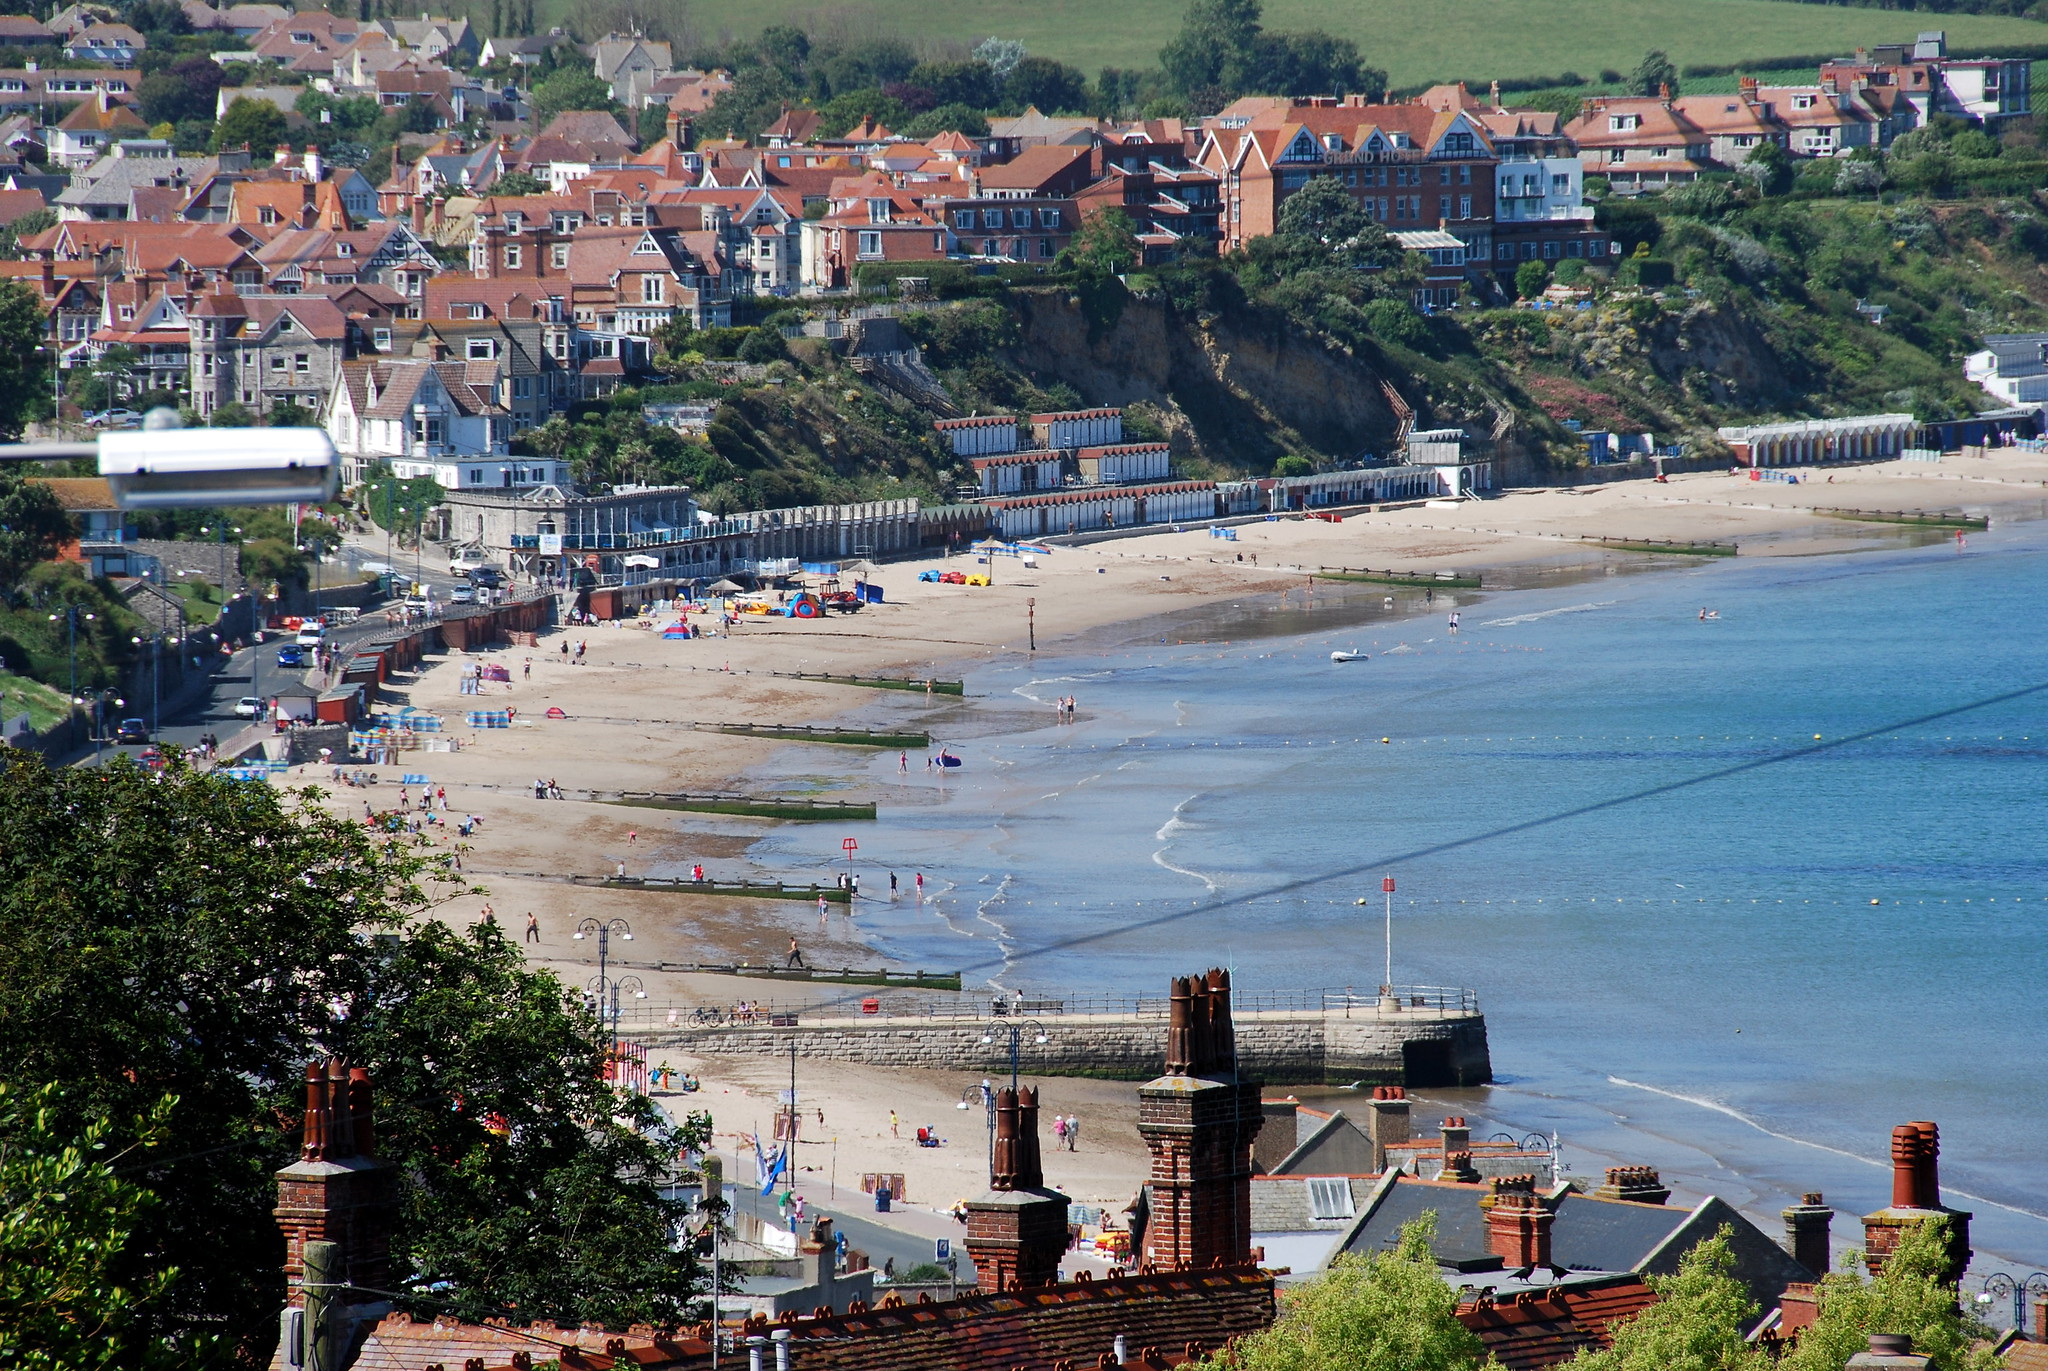 Swanage town | Swanage